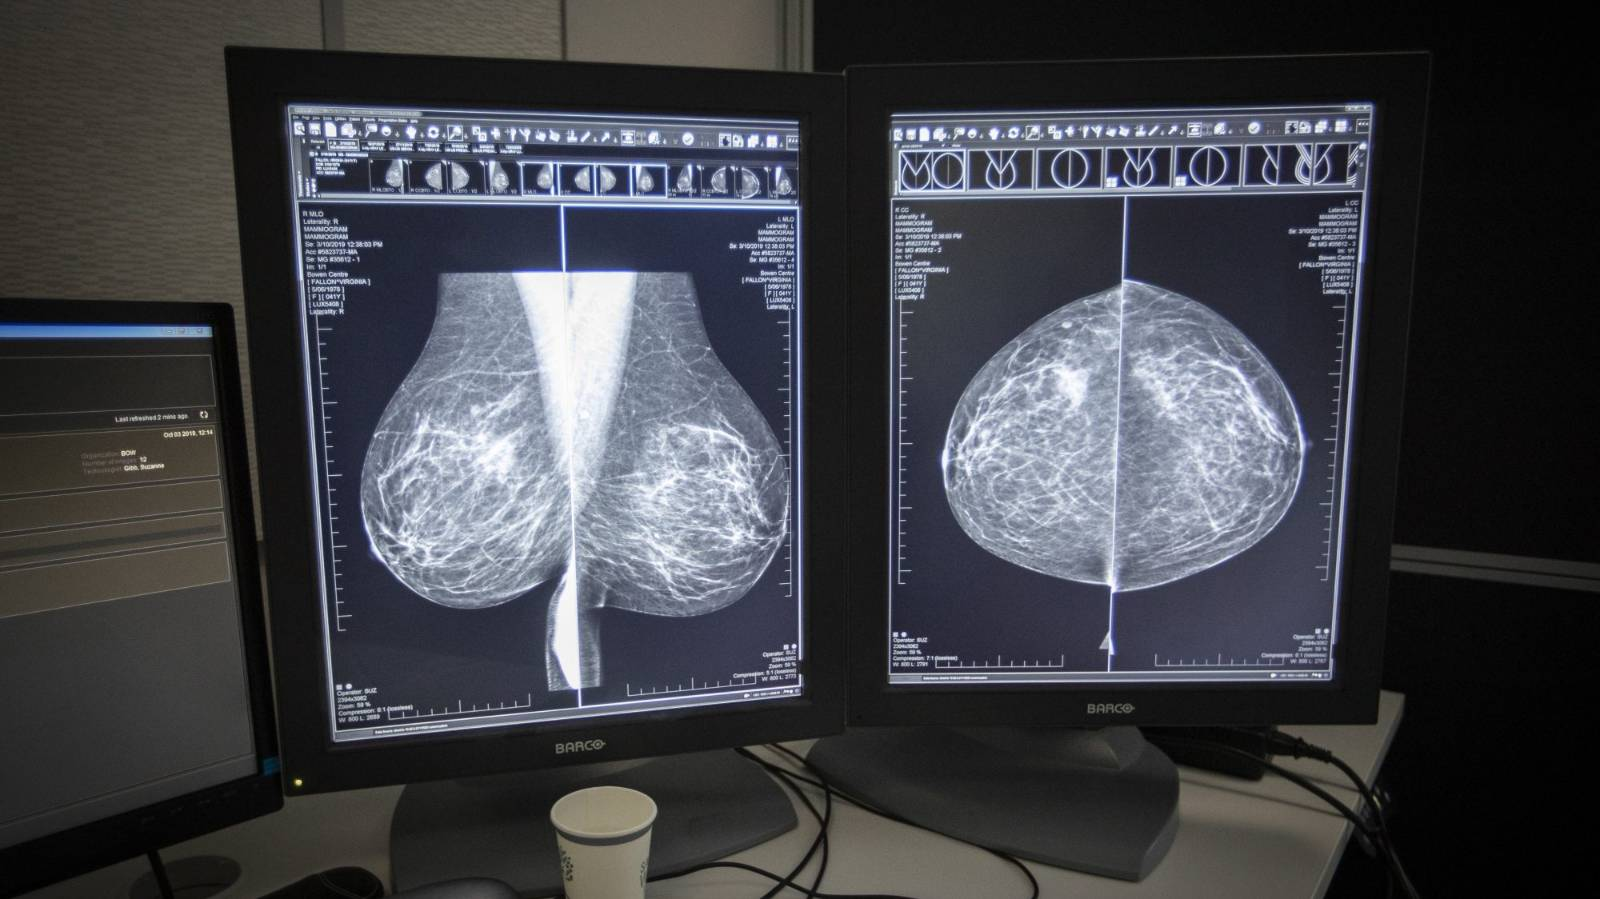 Breast cancer diagnoses drop due to Covid-19, but on the rise again